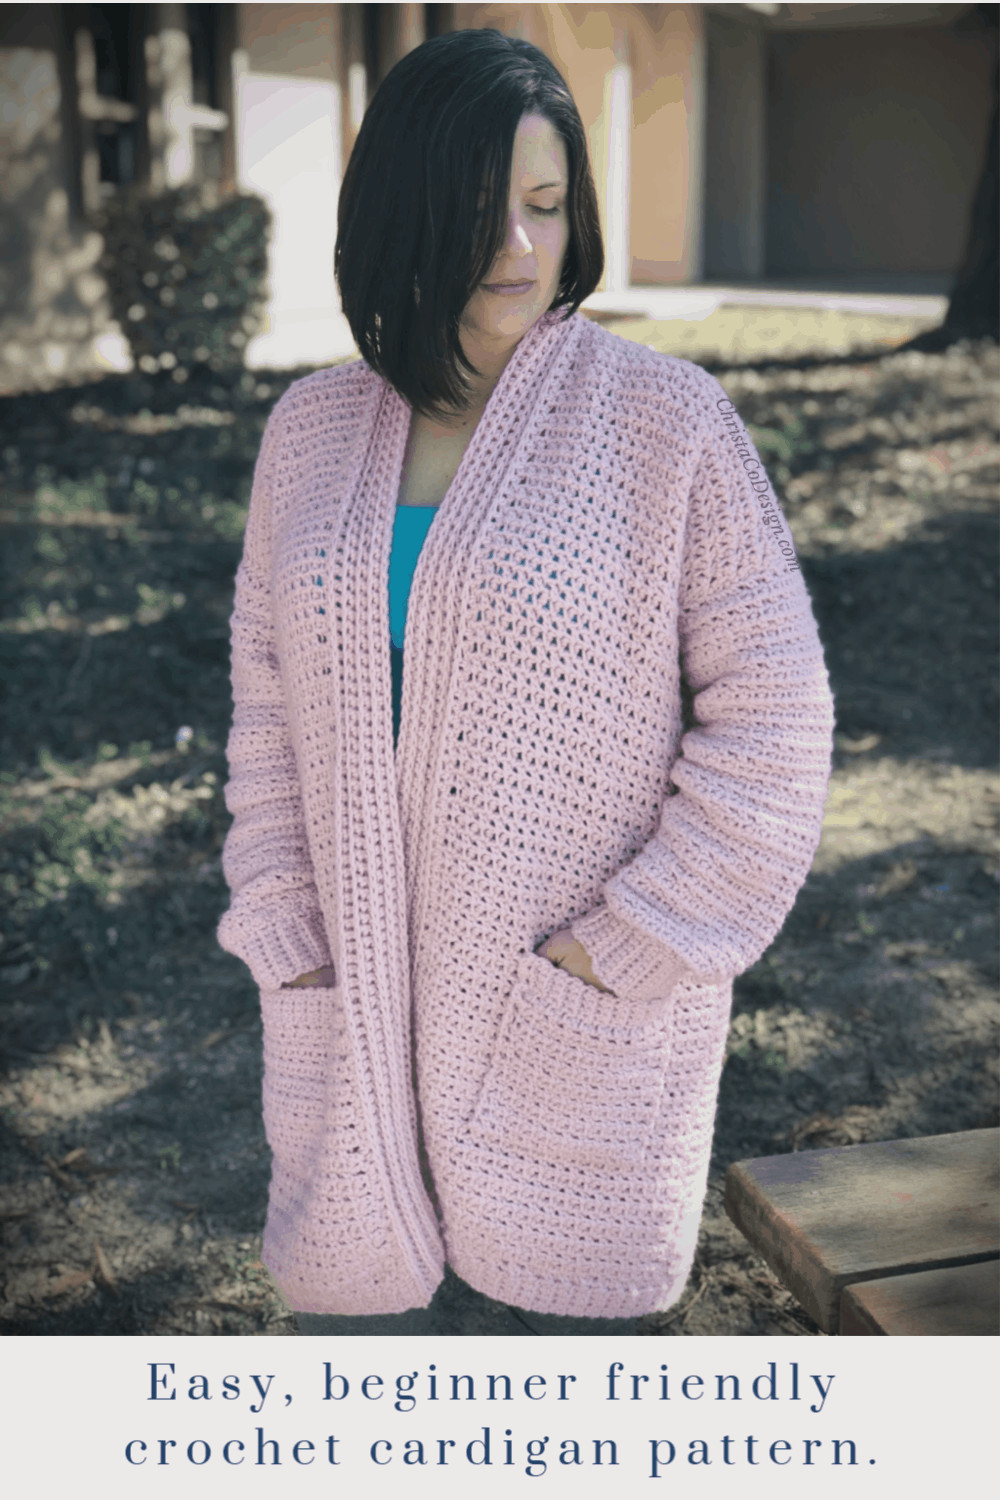 picture of woman in pink cozy crochet cardigan pin with text